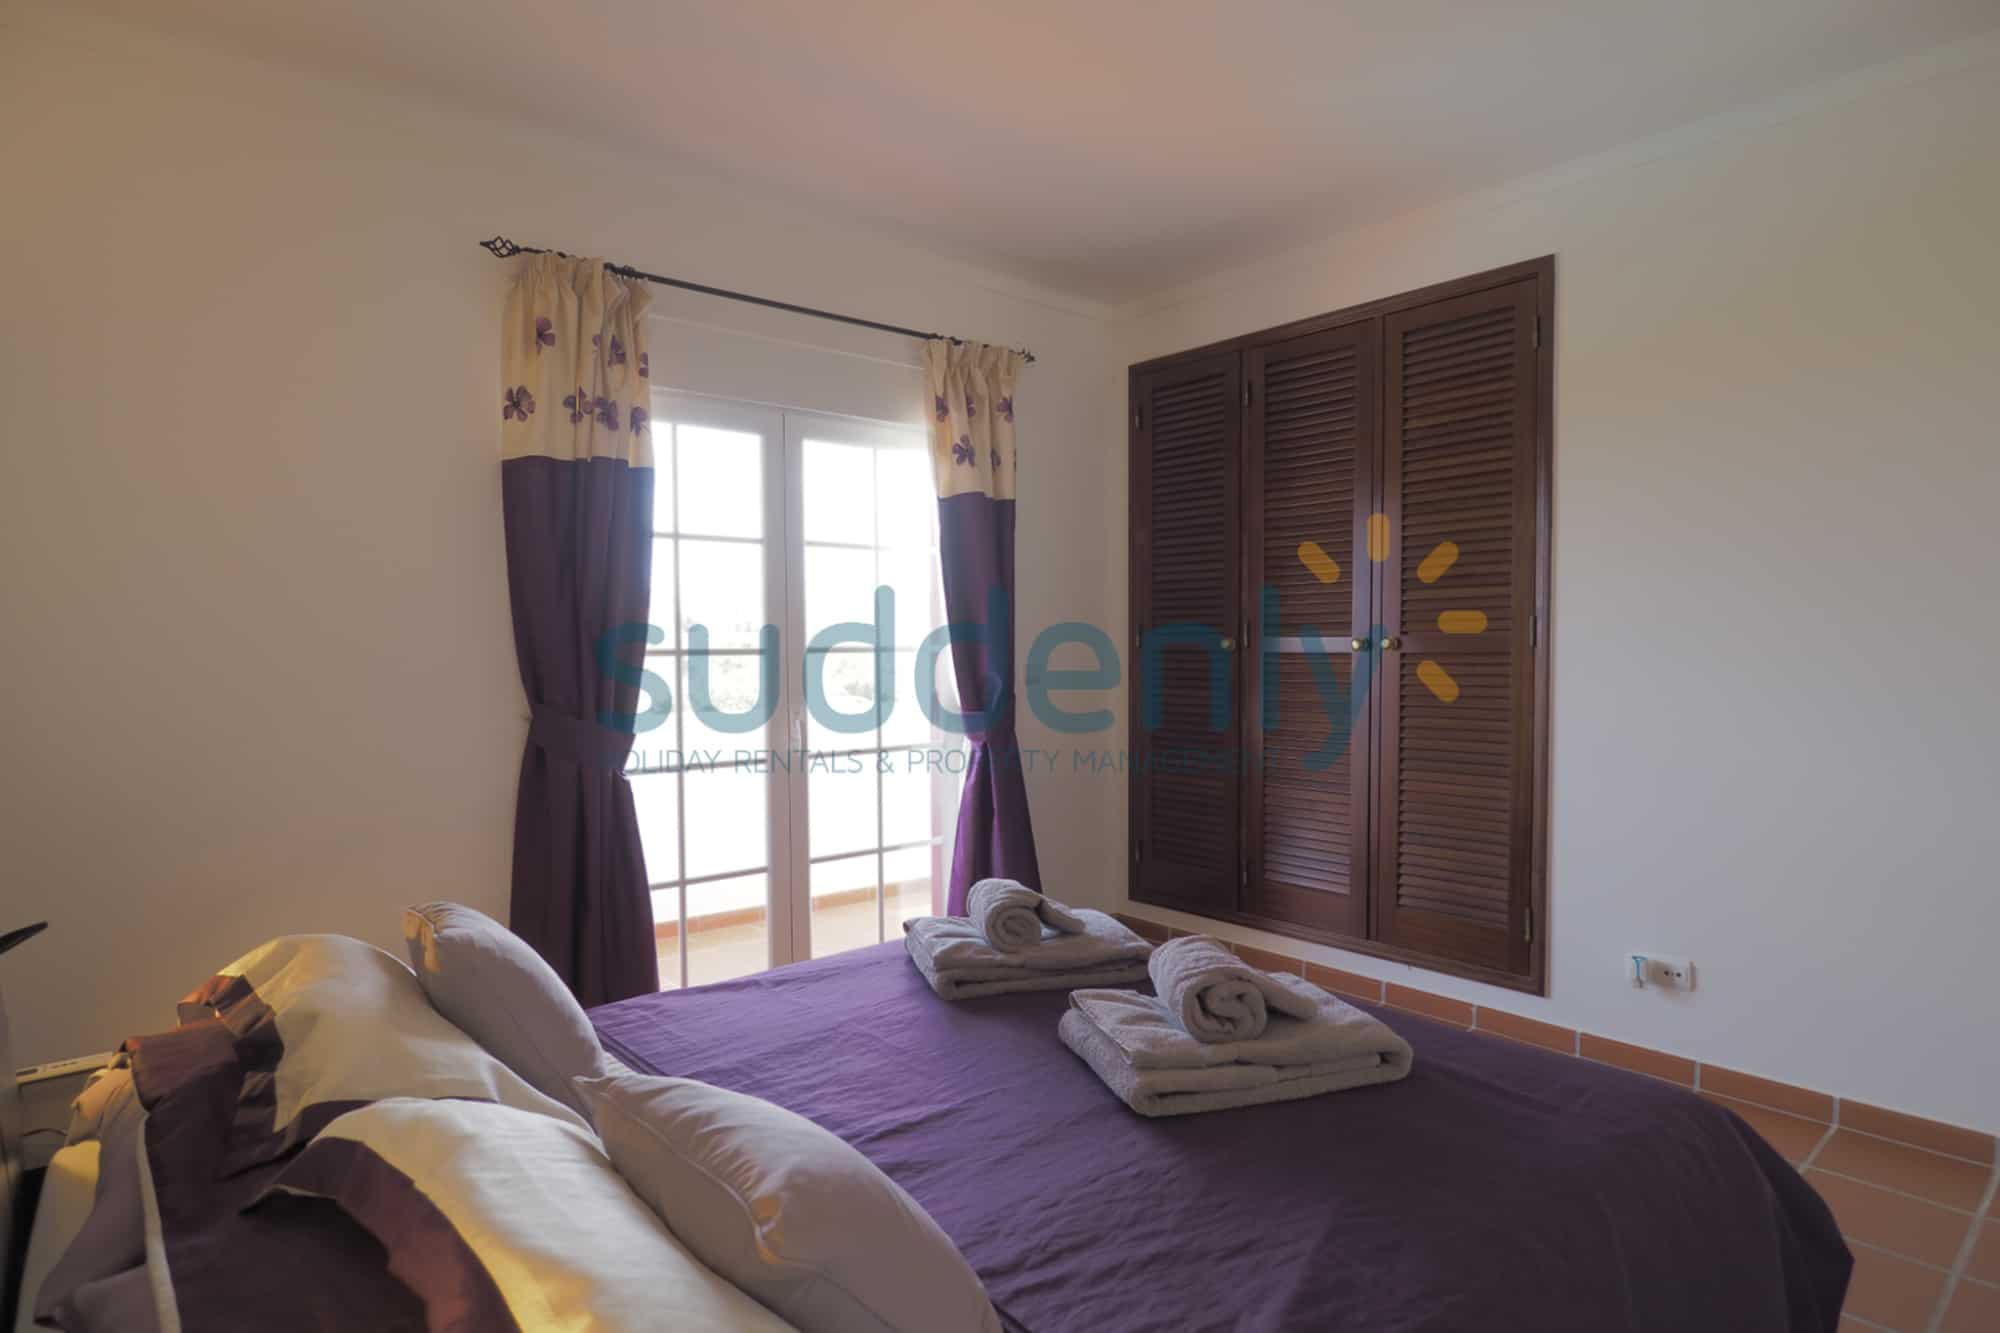 Holiday Rentals in Praia D'El Rey 241